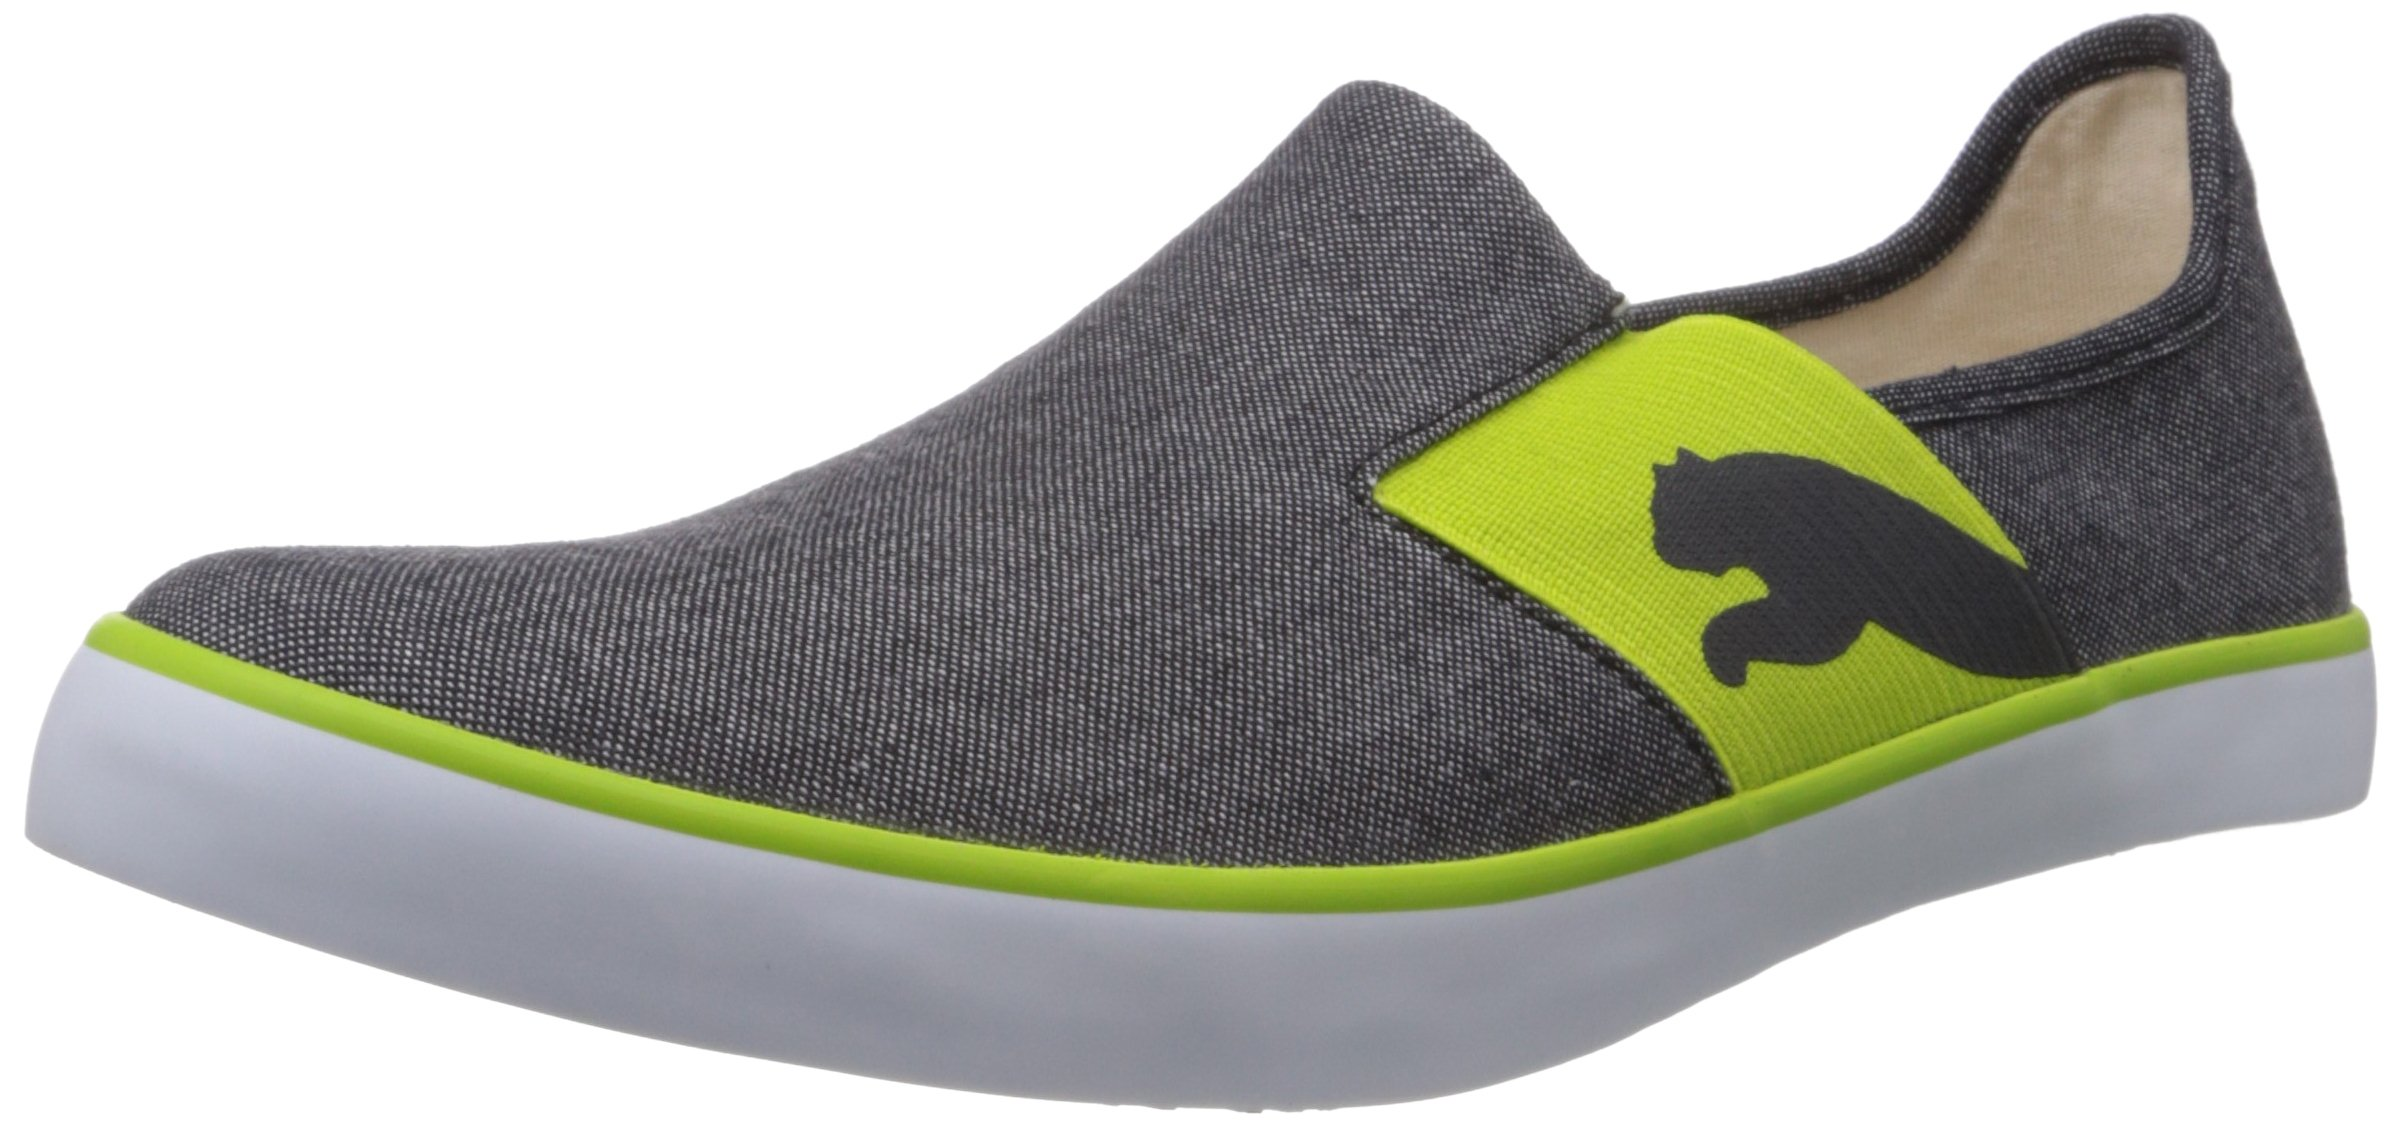 Puma Men's Lazy Slip On Canvas Sneakers